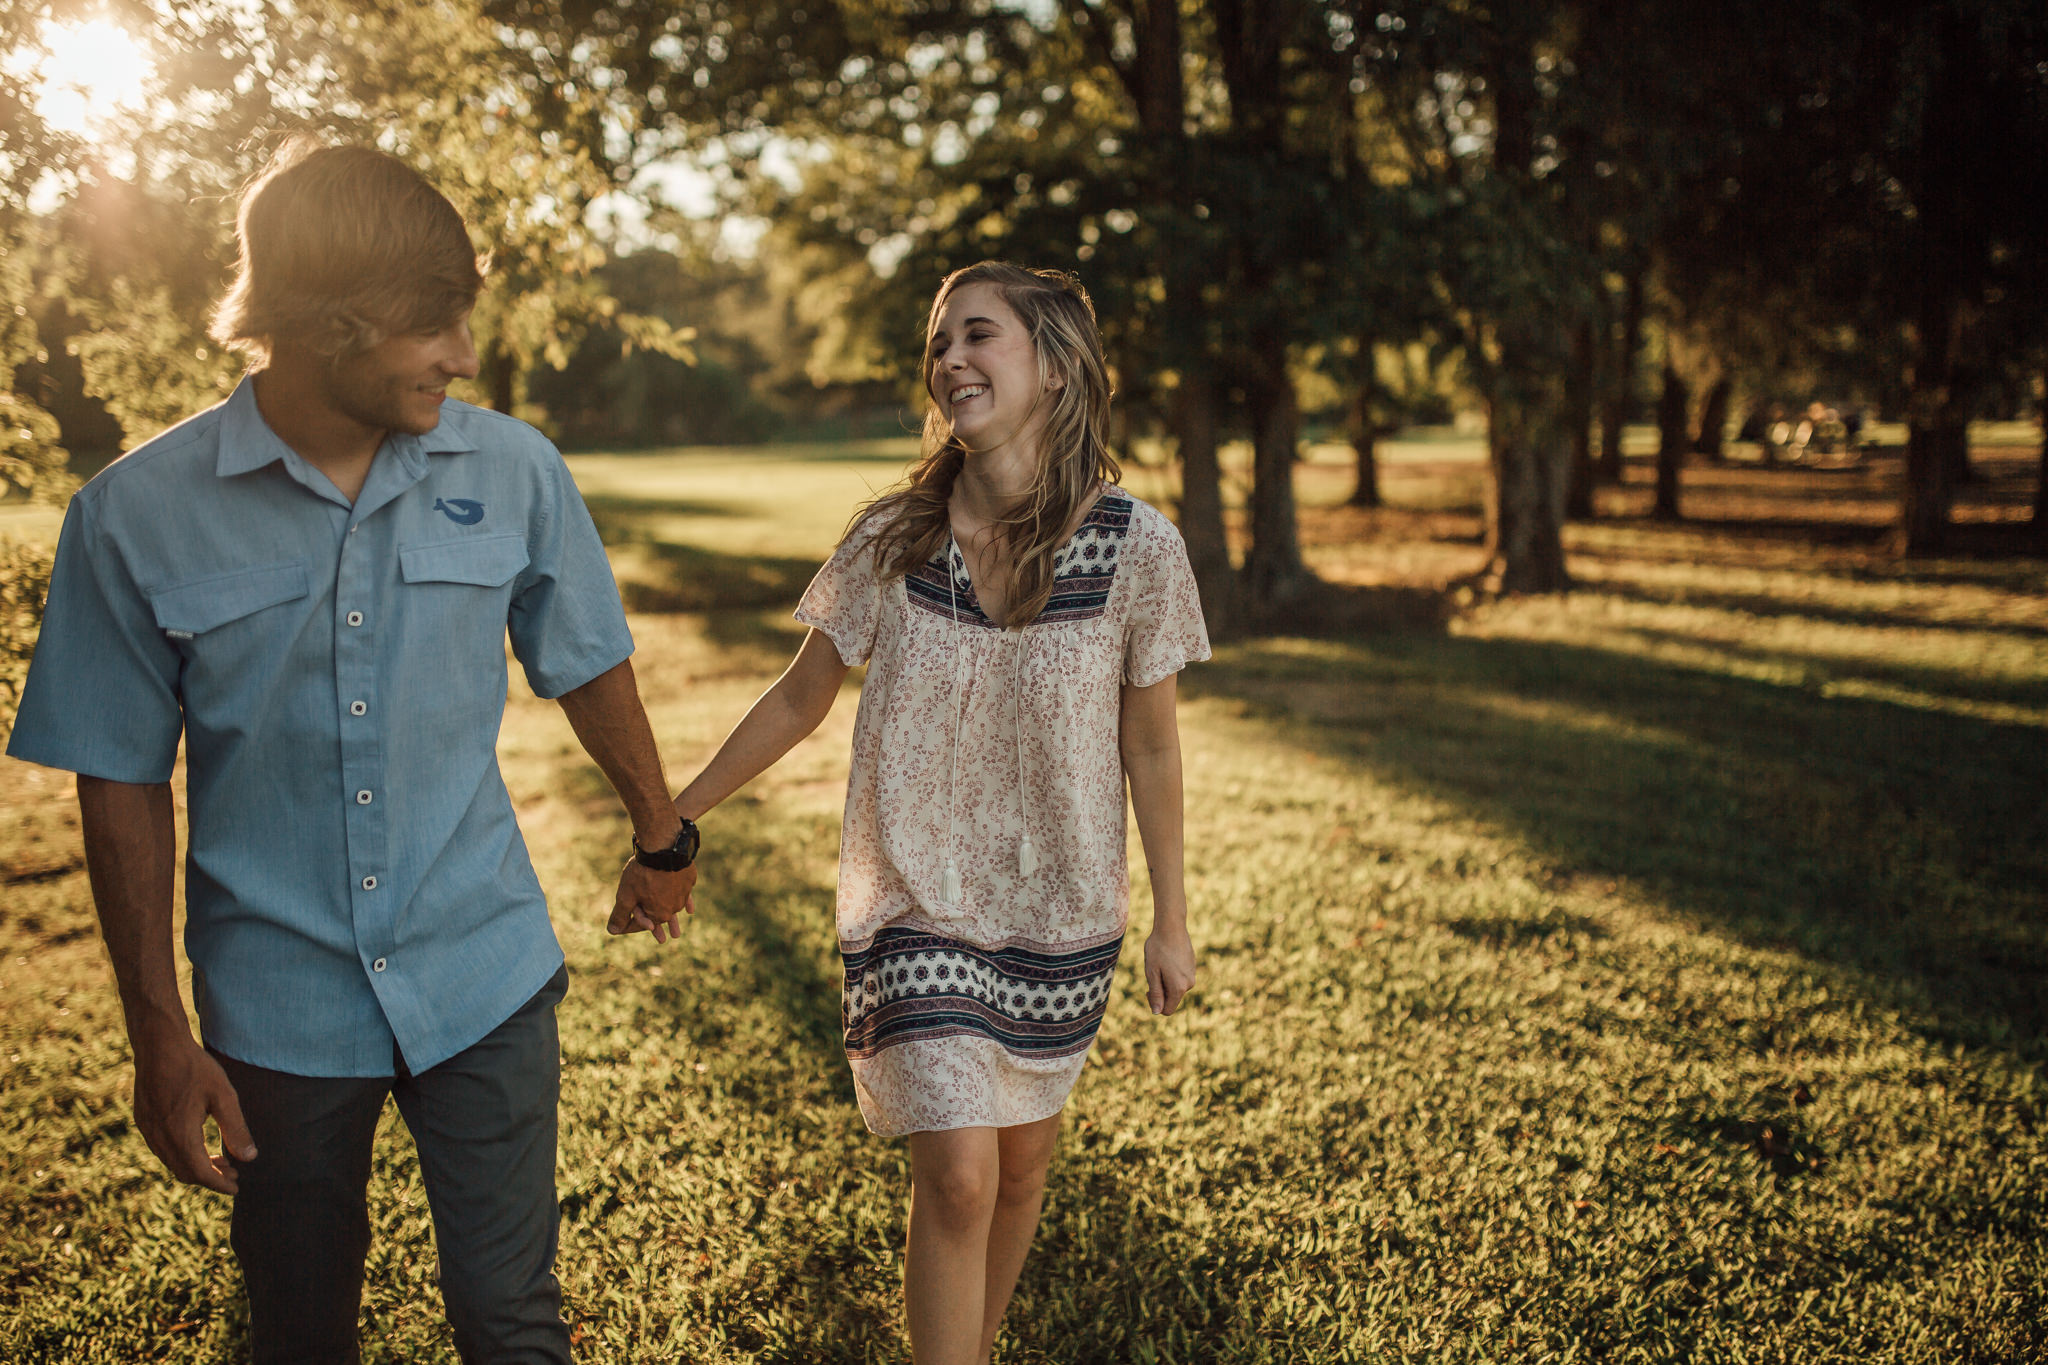 cassie-cook-photography-shelby-farms-engagment-pictures-memphis-wedding-photographer-526.jpg